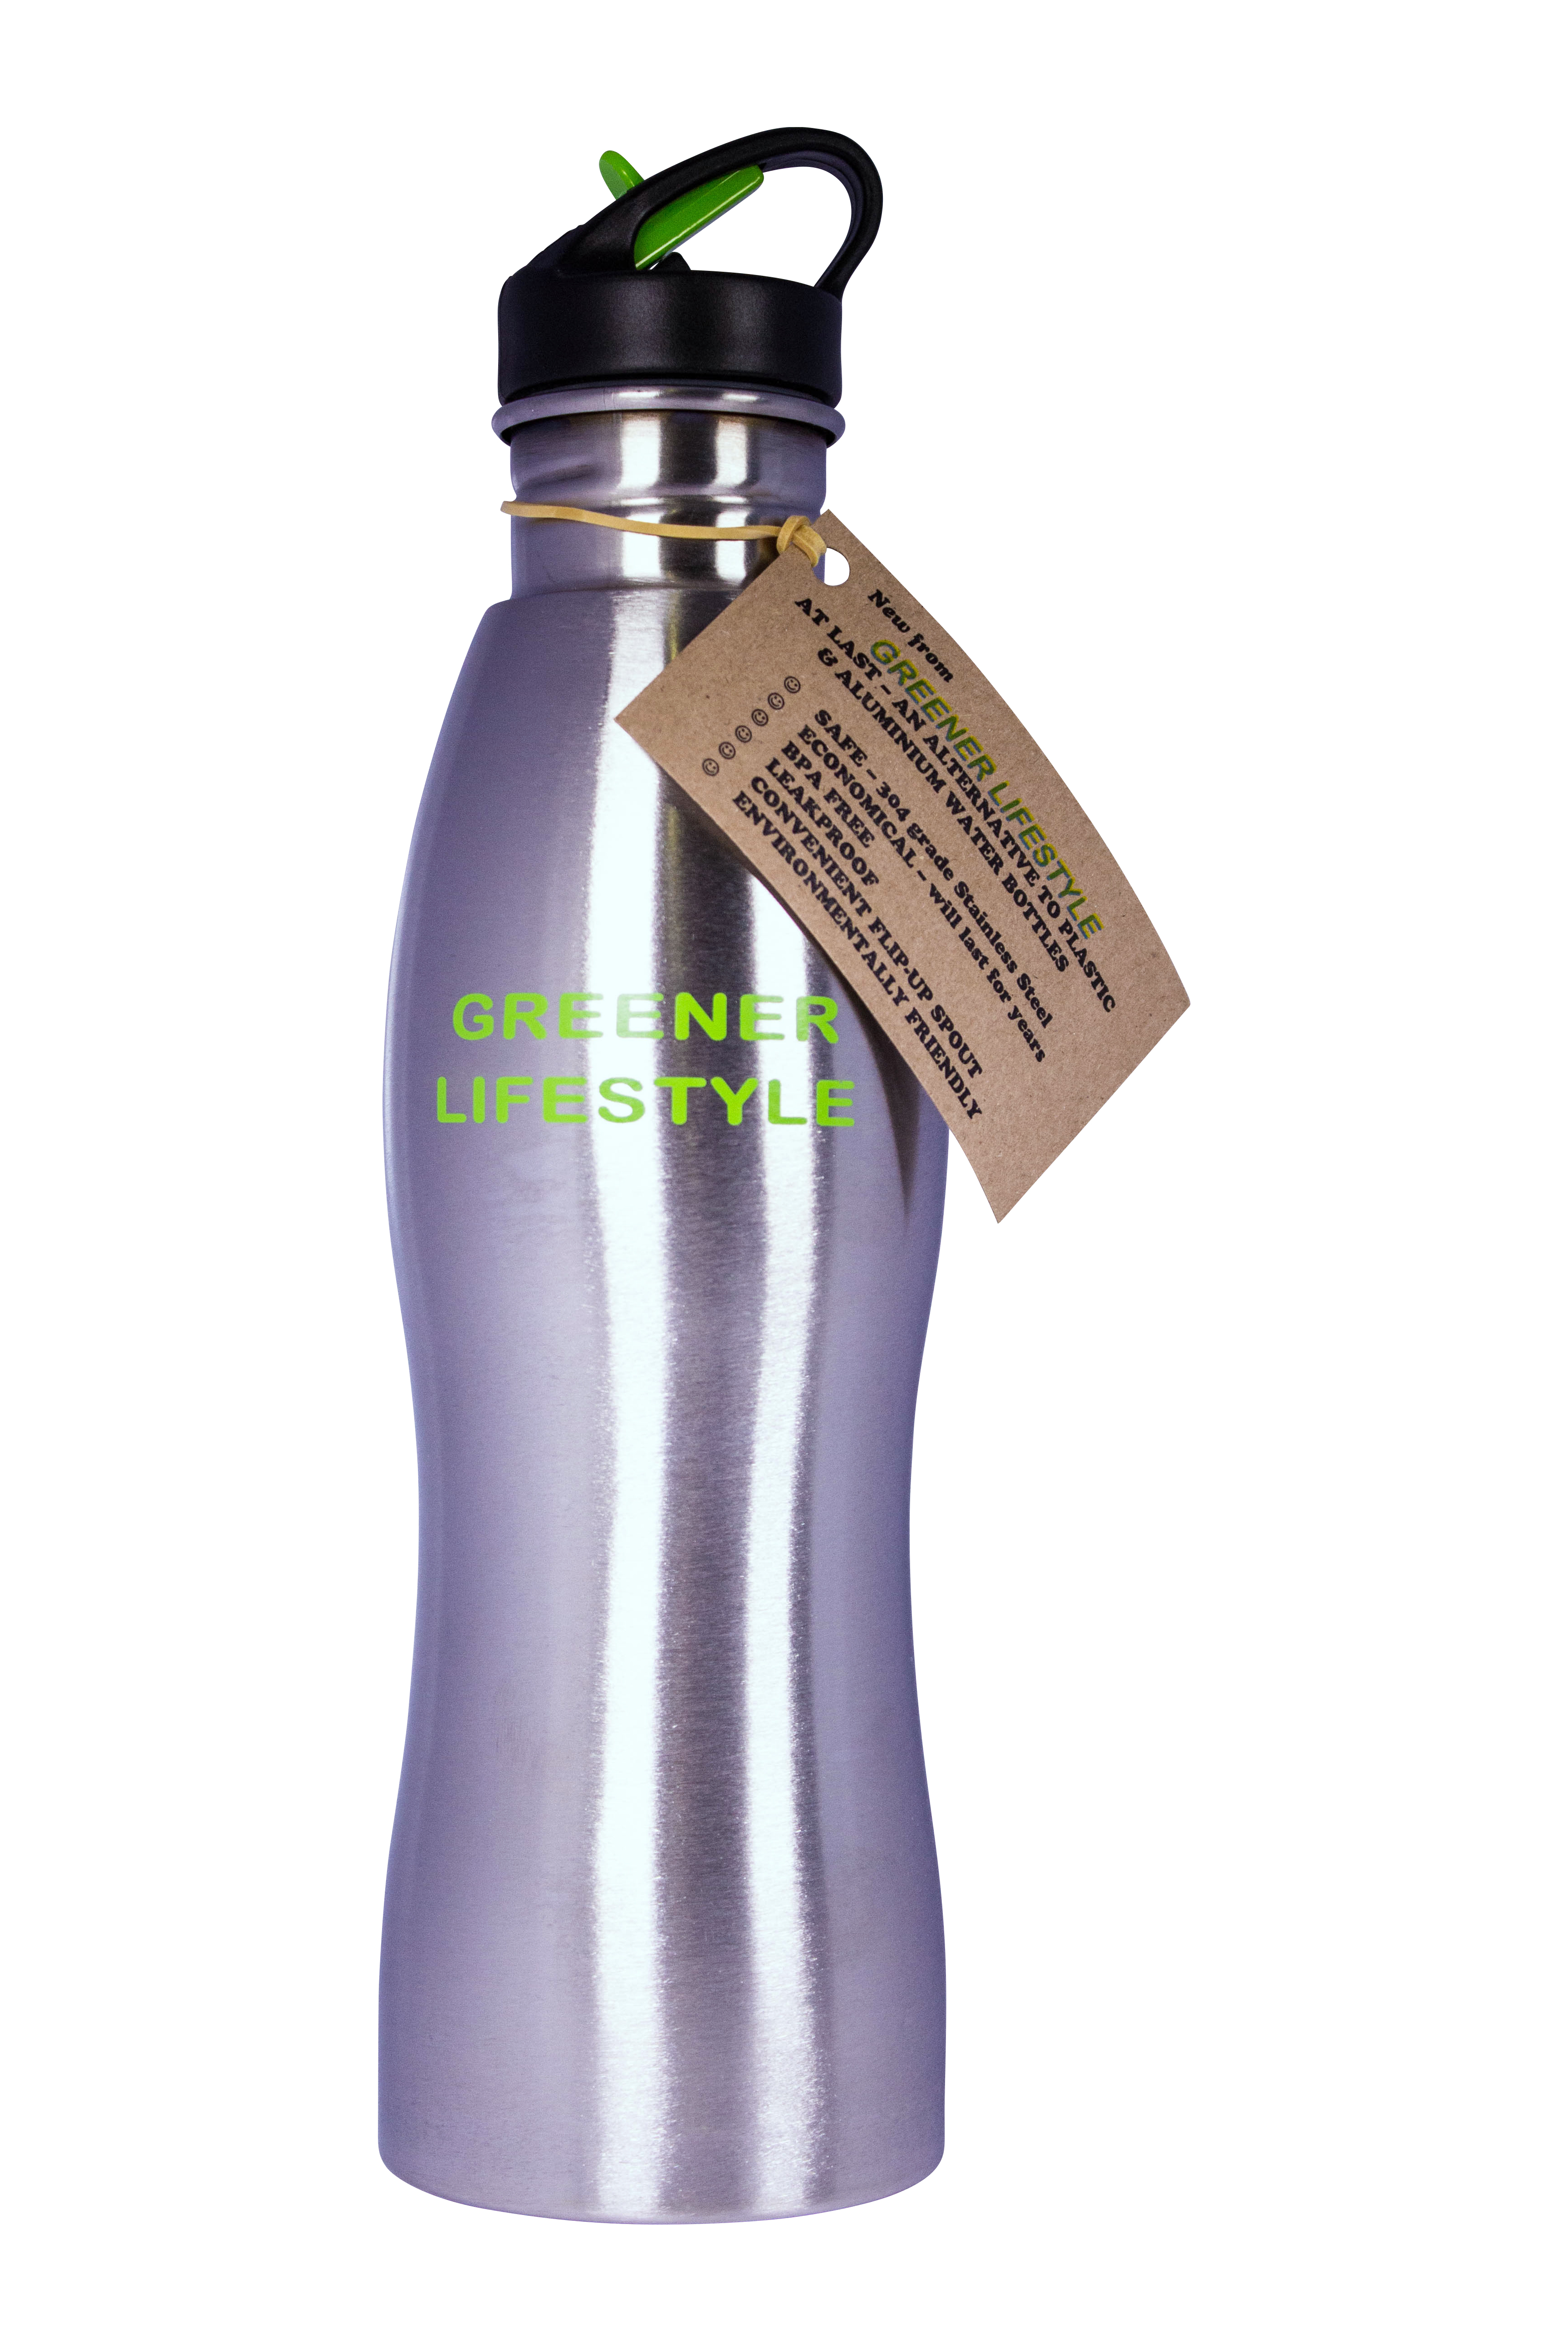 greener-lifestyle-stainless-steel-bottle